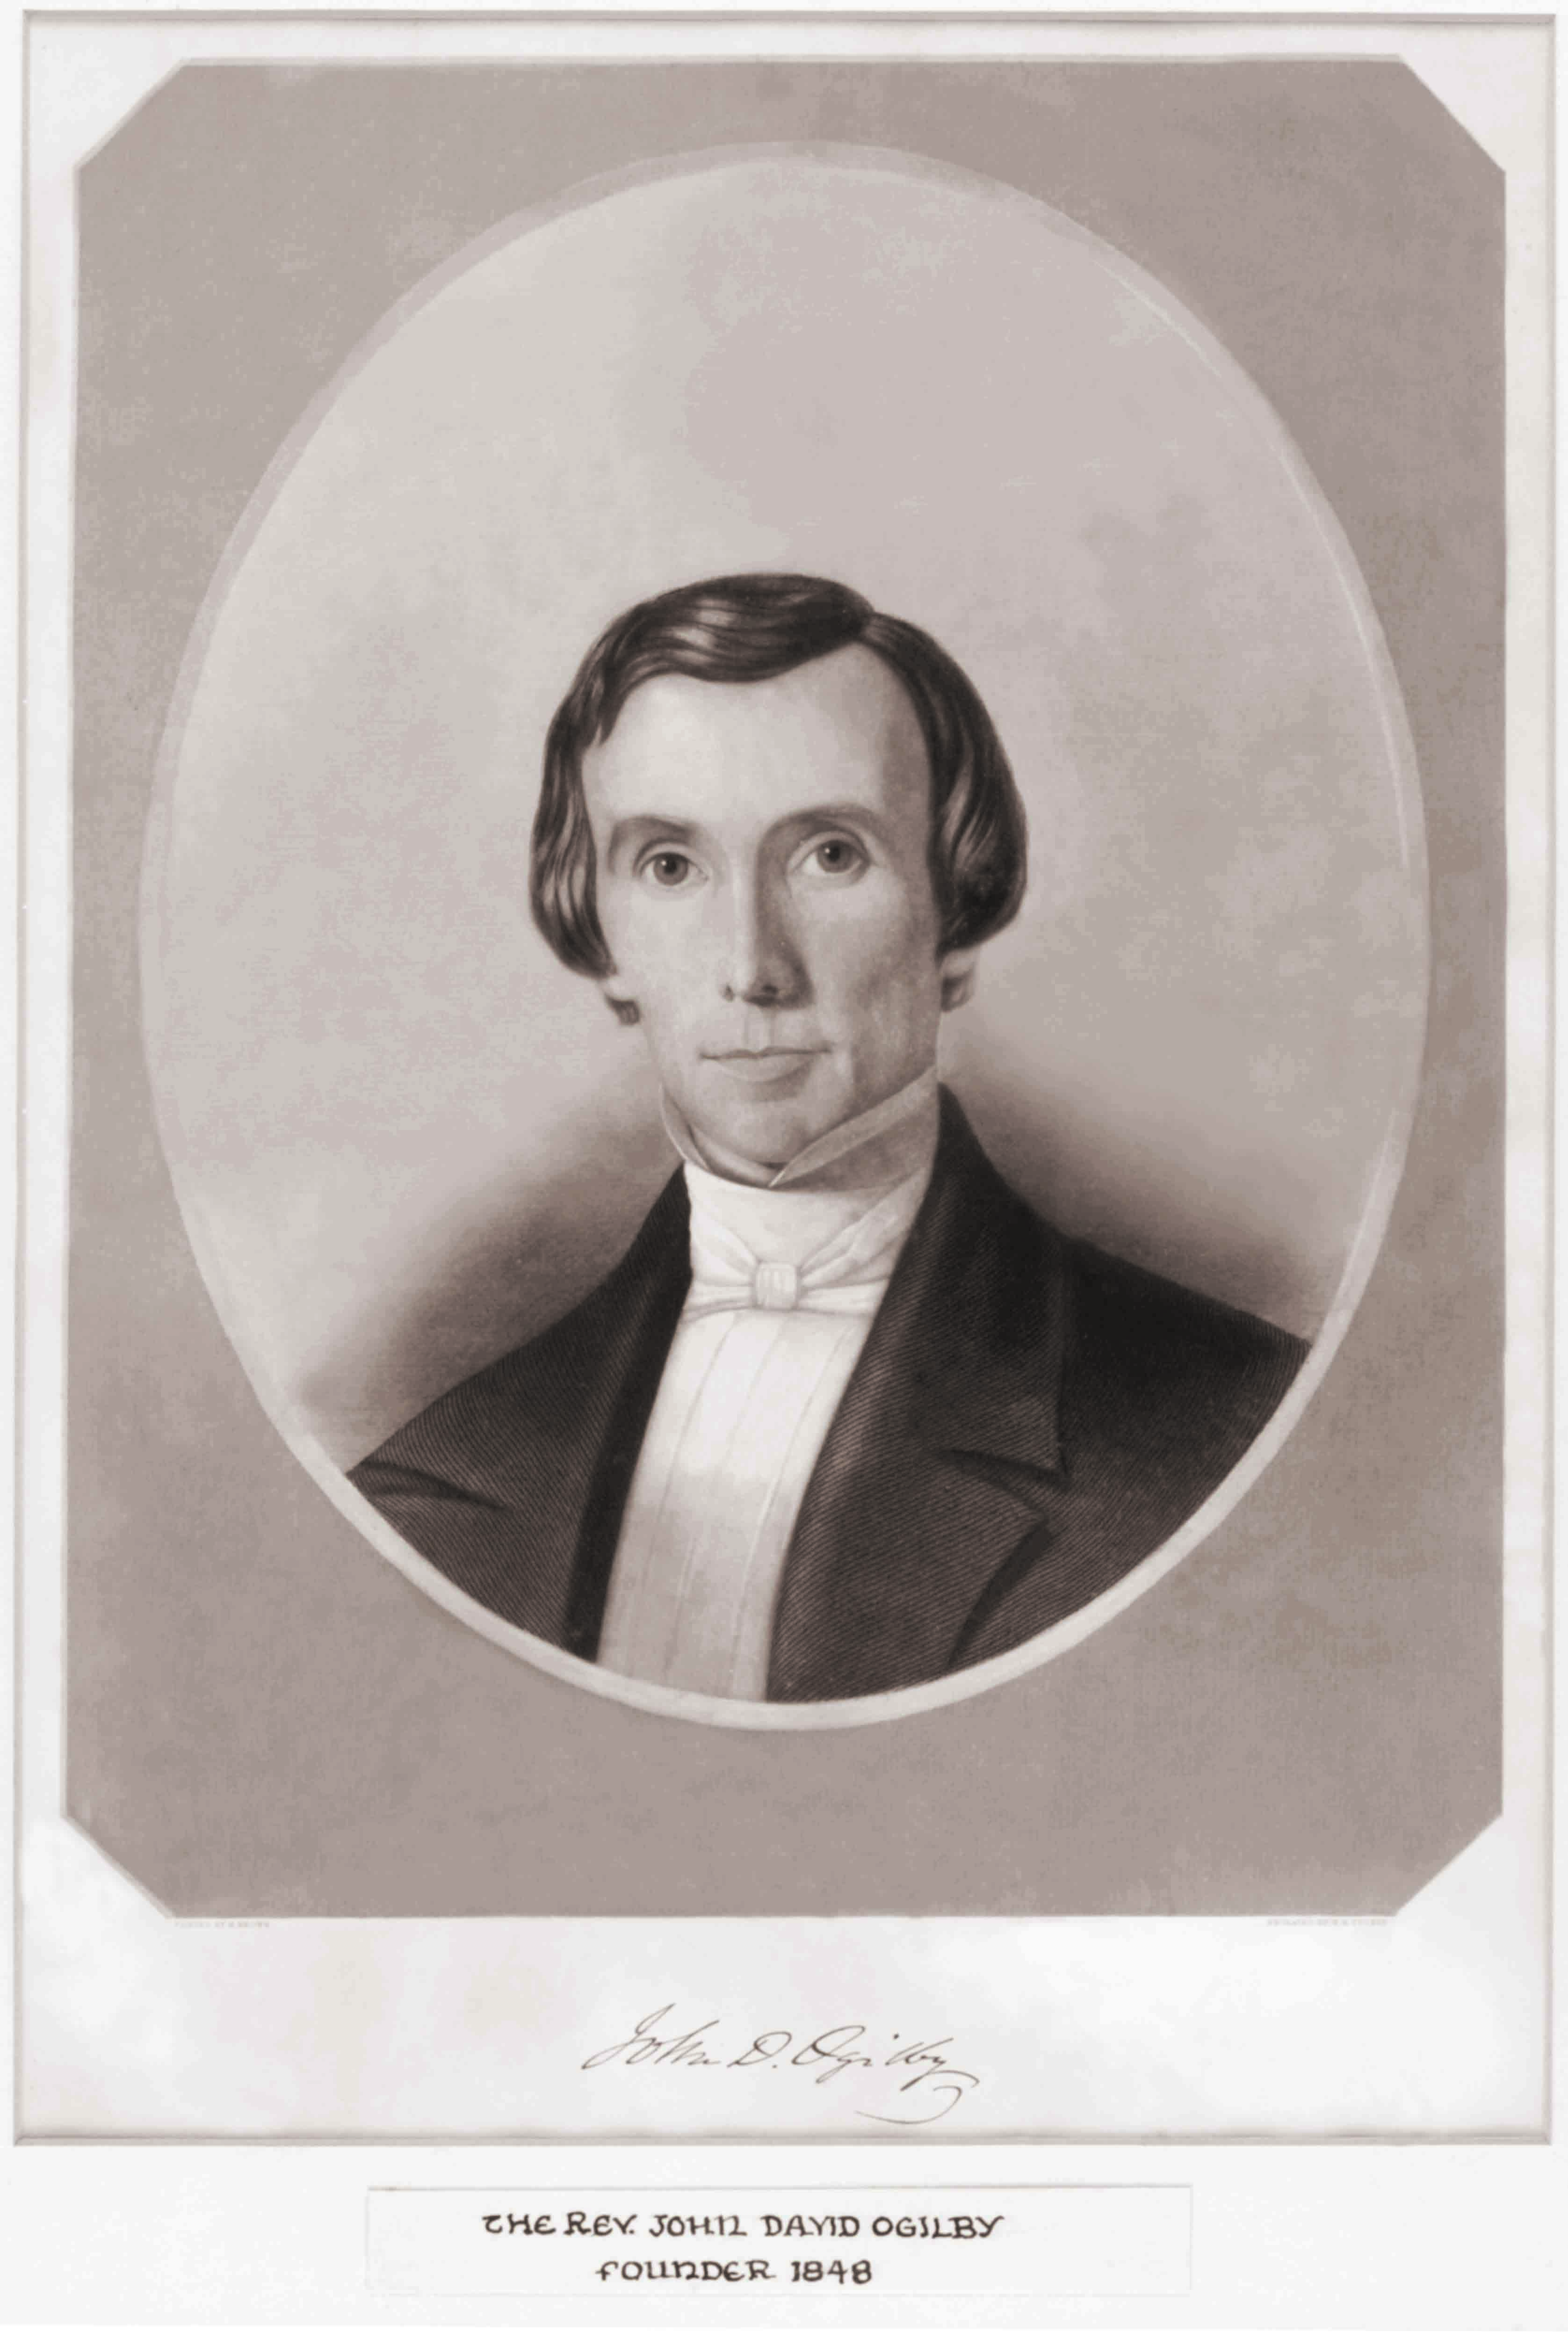 Picture of the Reverend John David Ogilby